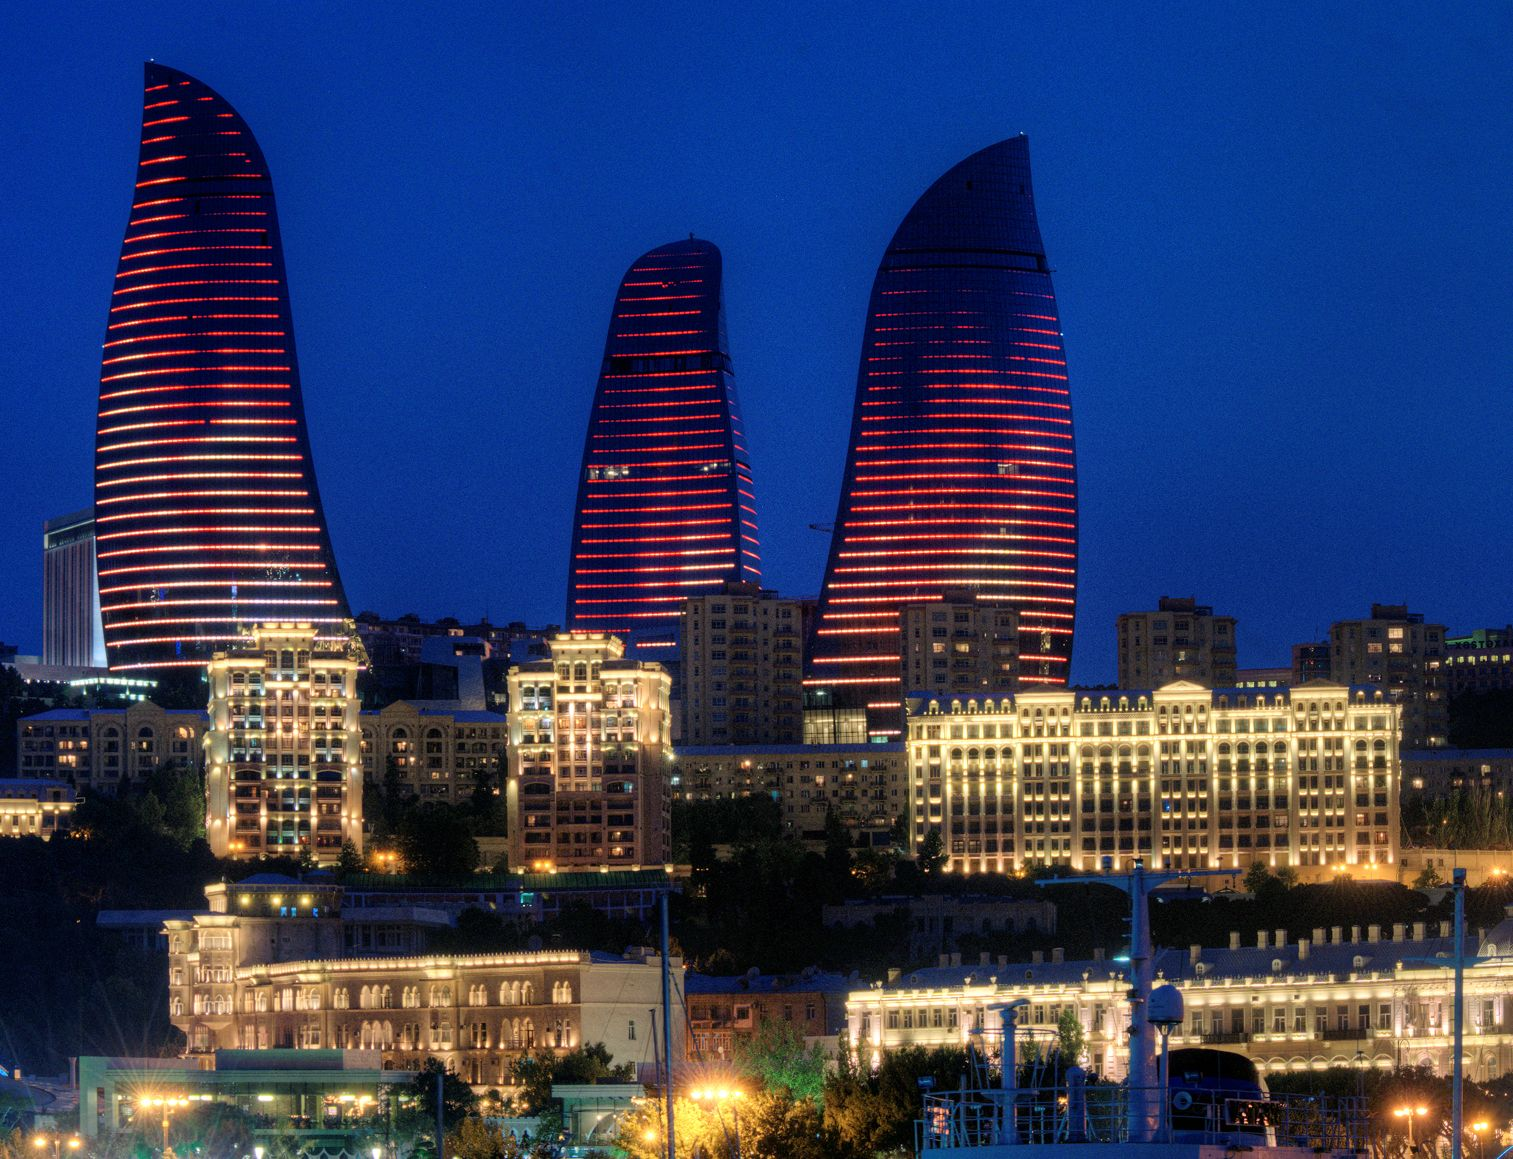 Baku Flame Towers Baku Azerbaijan Perched On A Hilltop Site Overlooking Baku Bay And The Old City Center This Iconic Trio Of Bui Skyscraper Baku Building